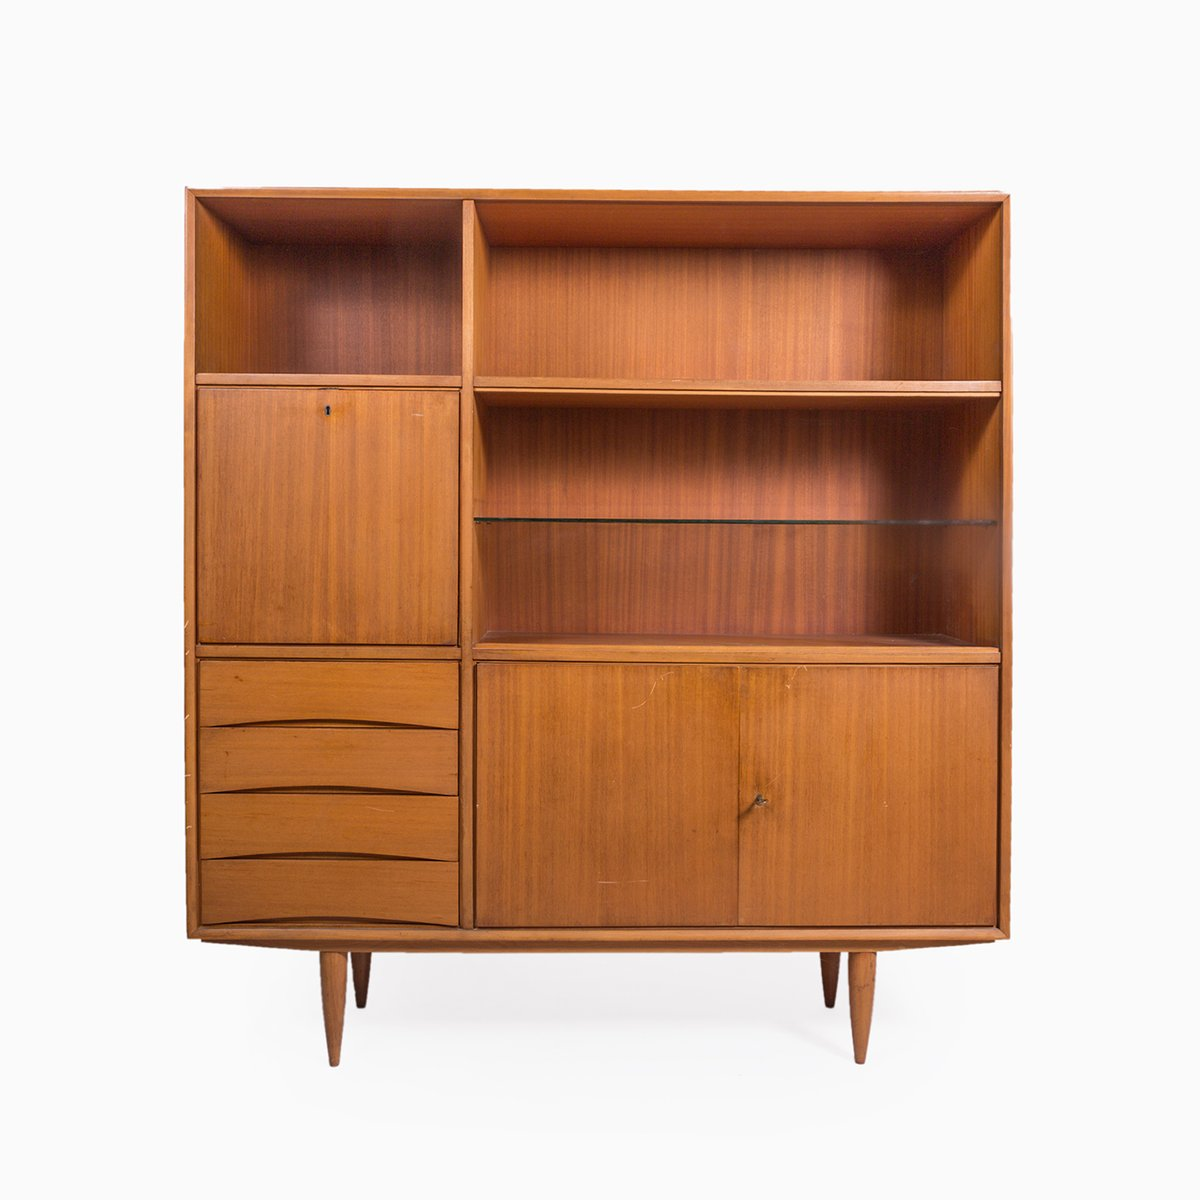 Vintage wooden cabinet with drawers for sale at pamono for Kitchen drawers for sale